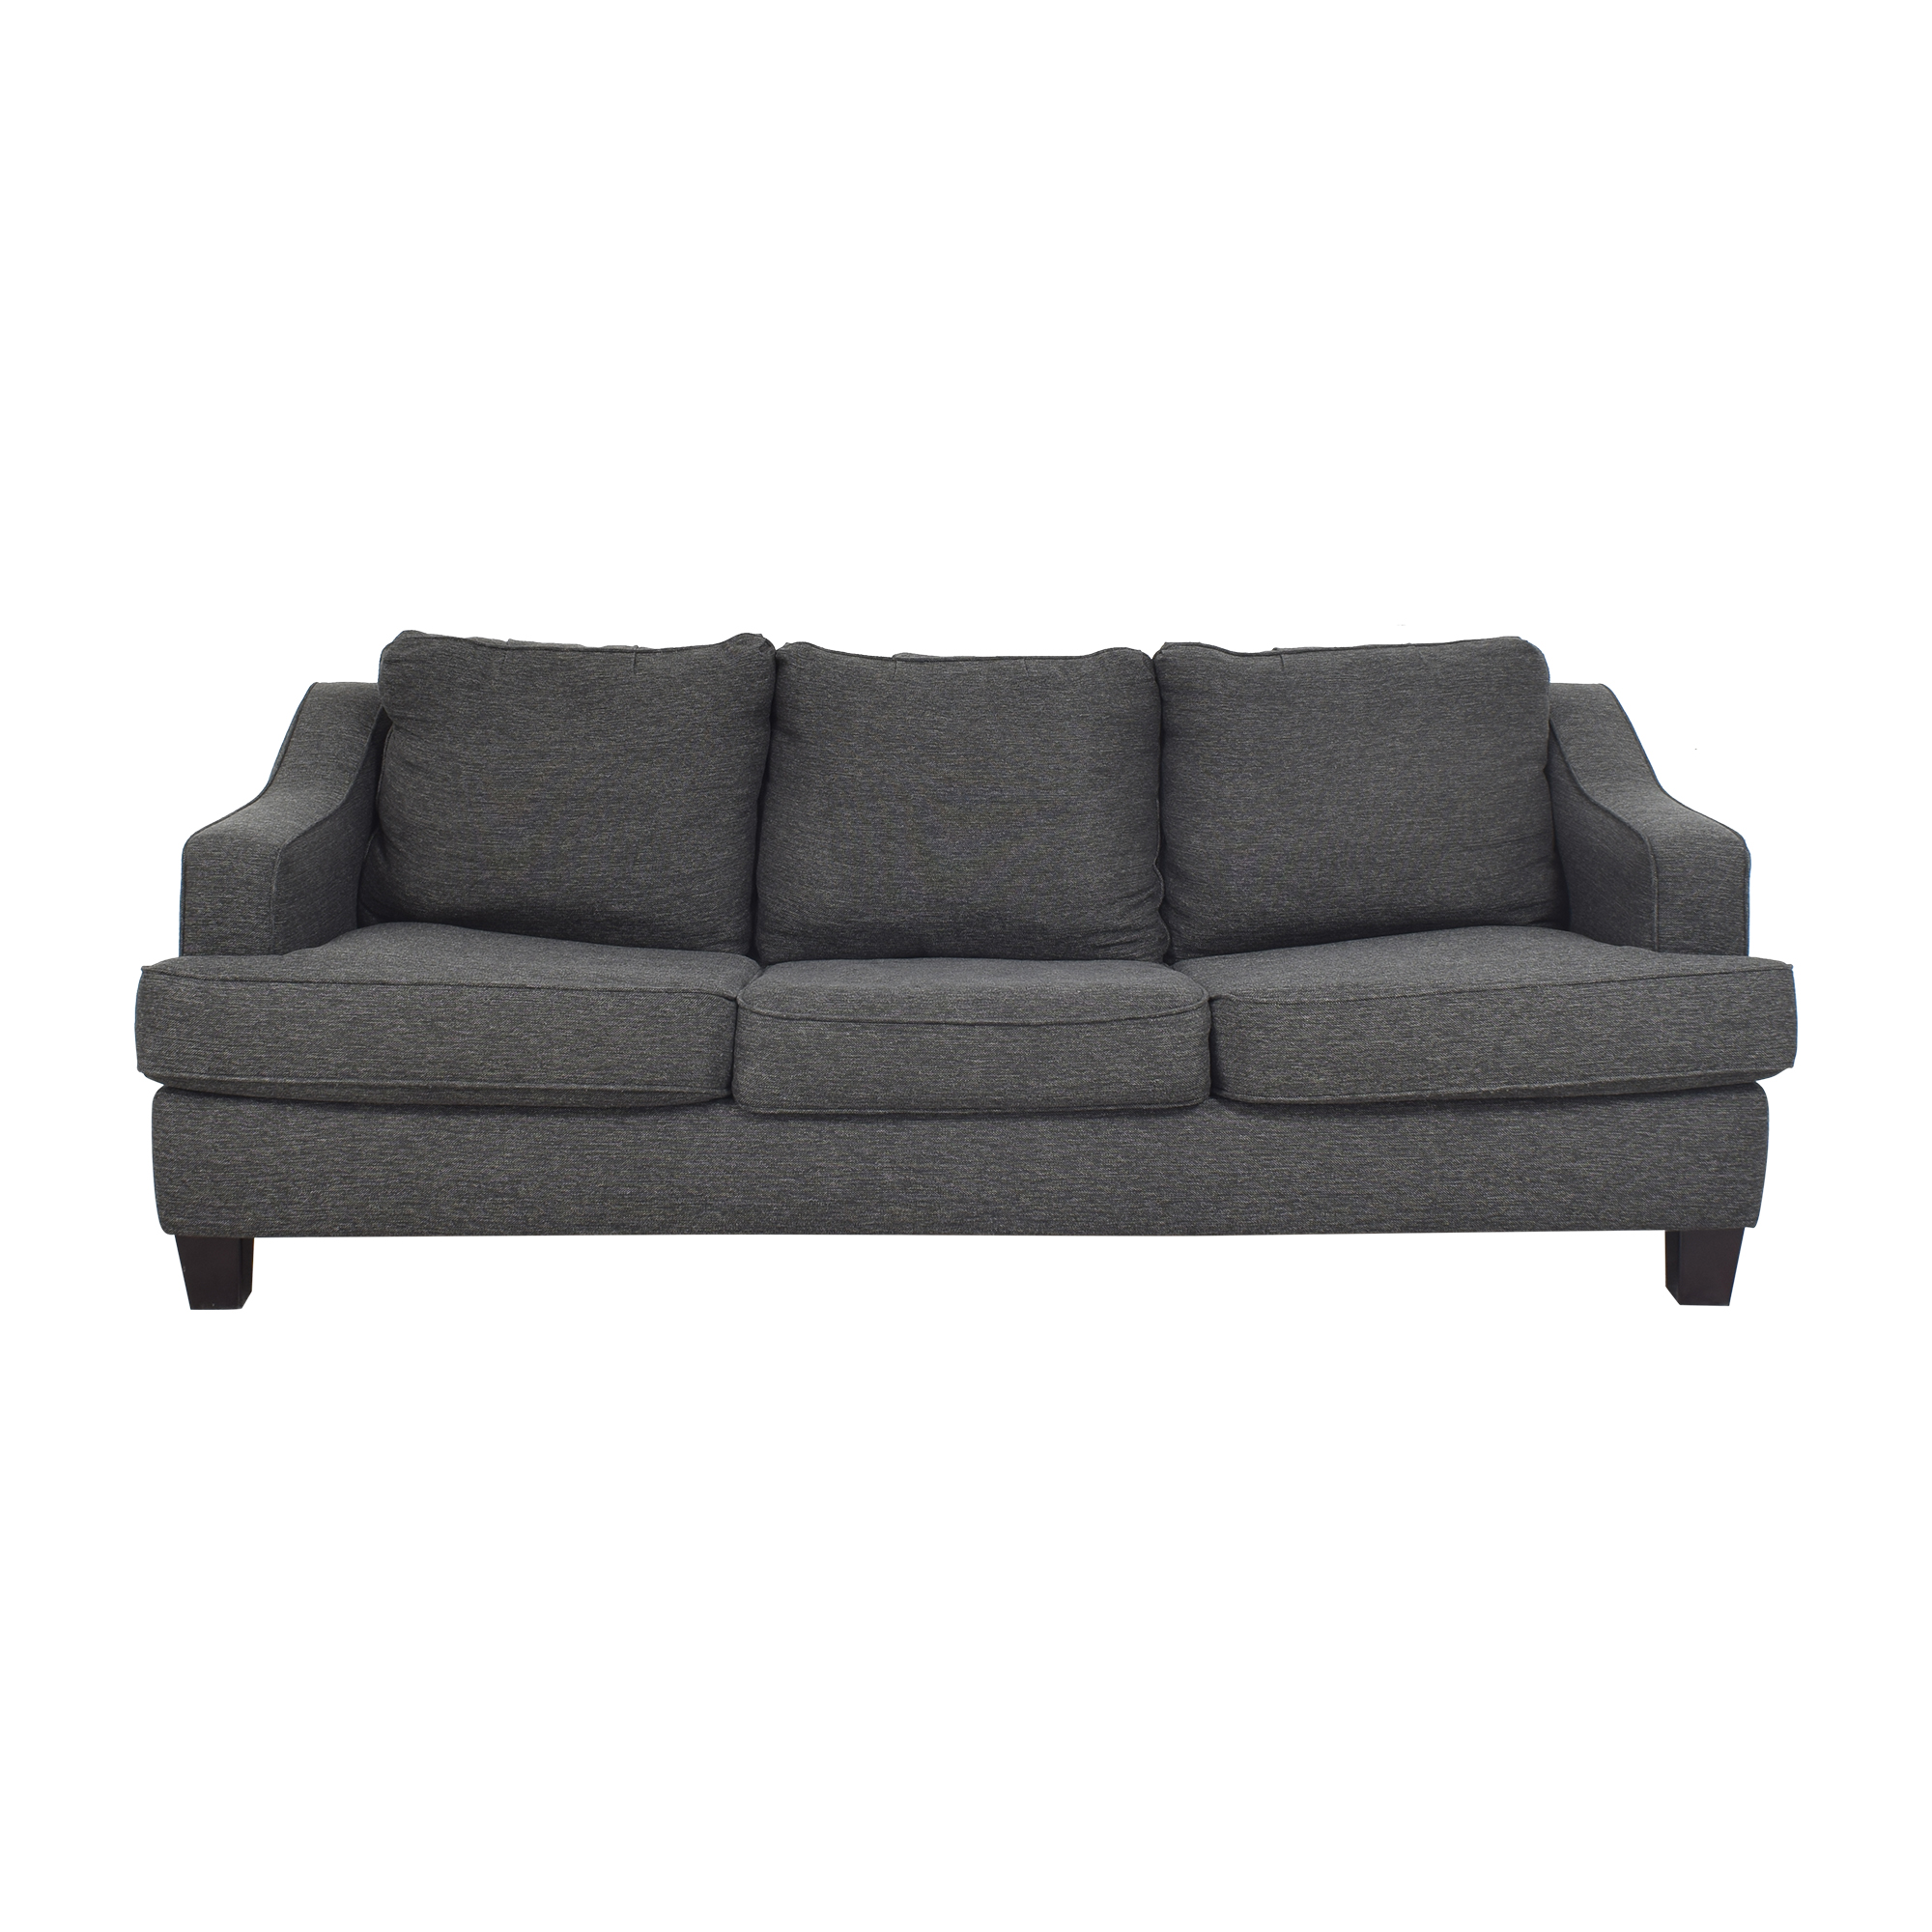 Raymour & Flanigan Modern Queen Sleeper Sofa / Sofas